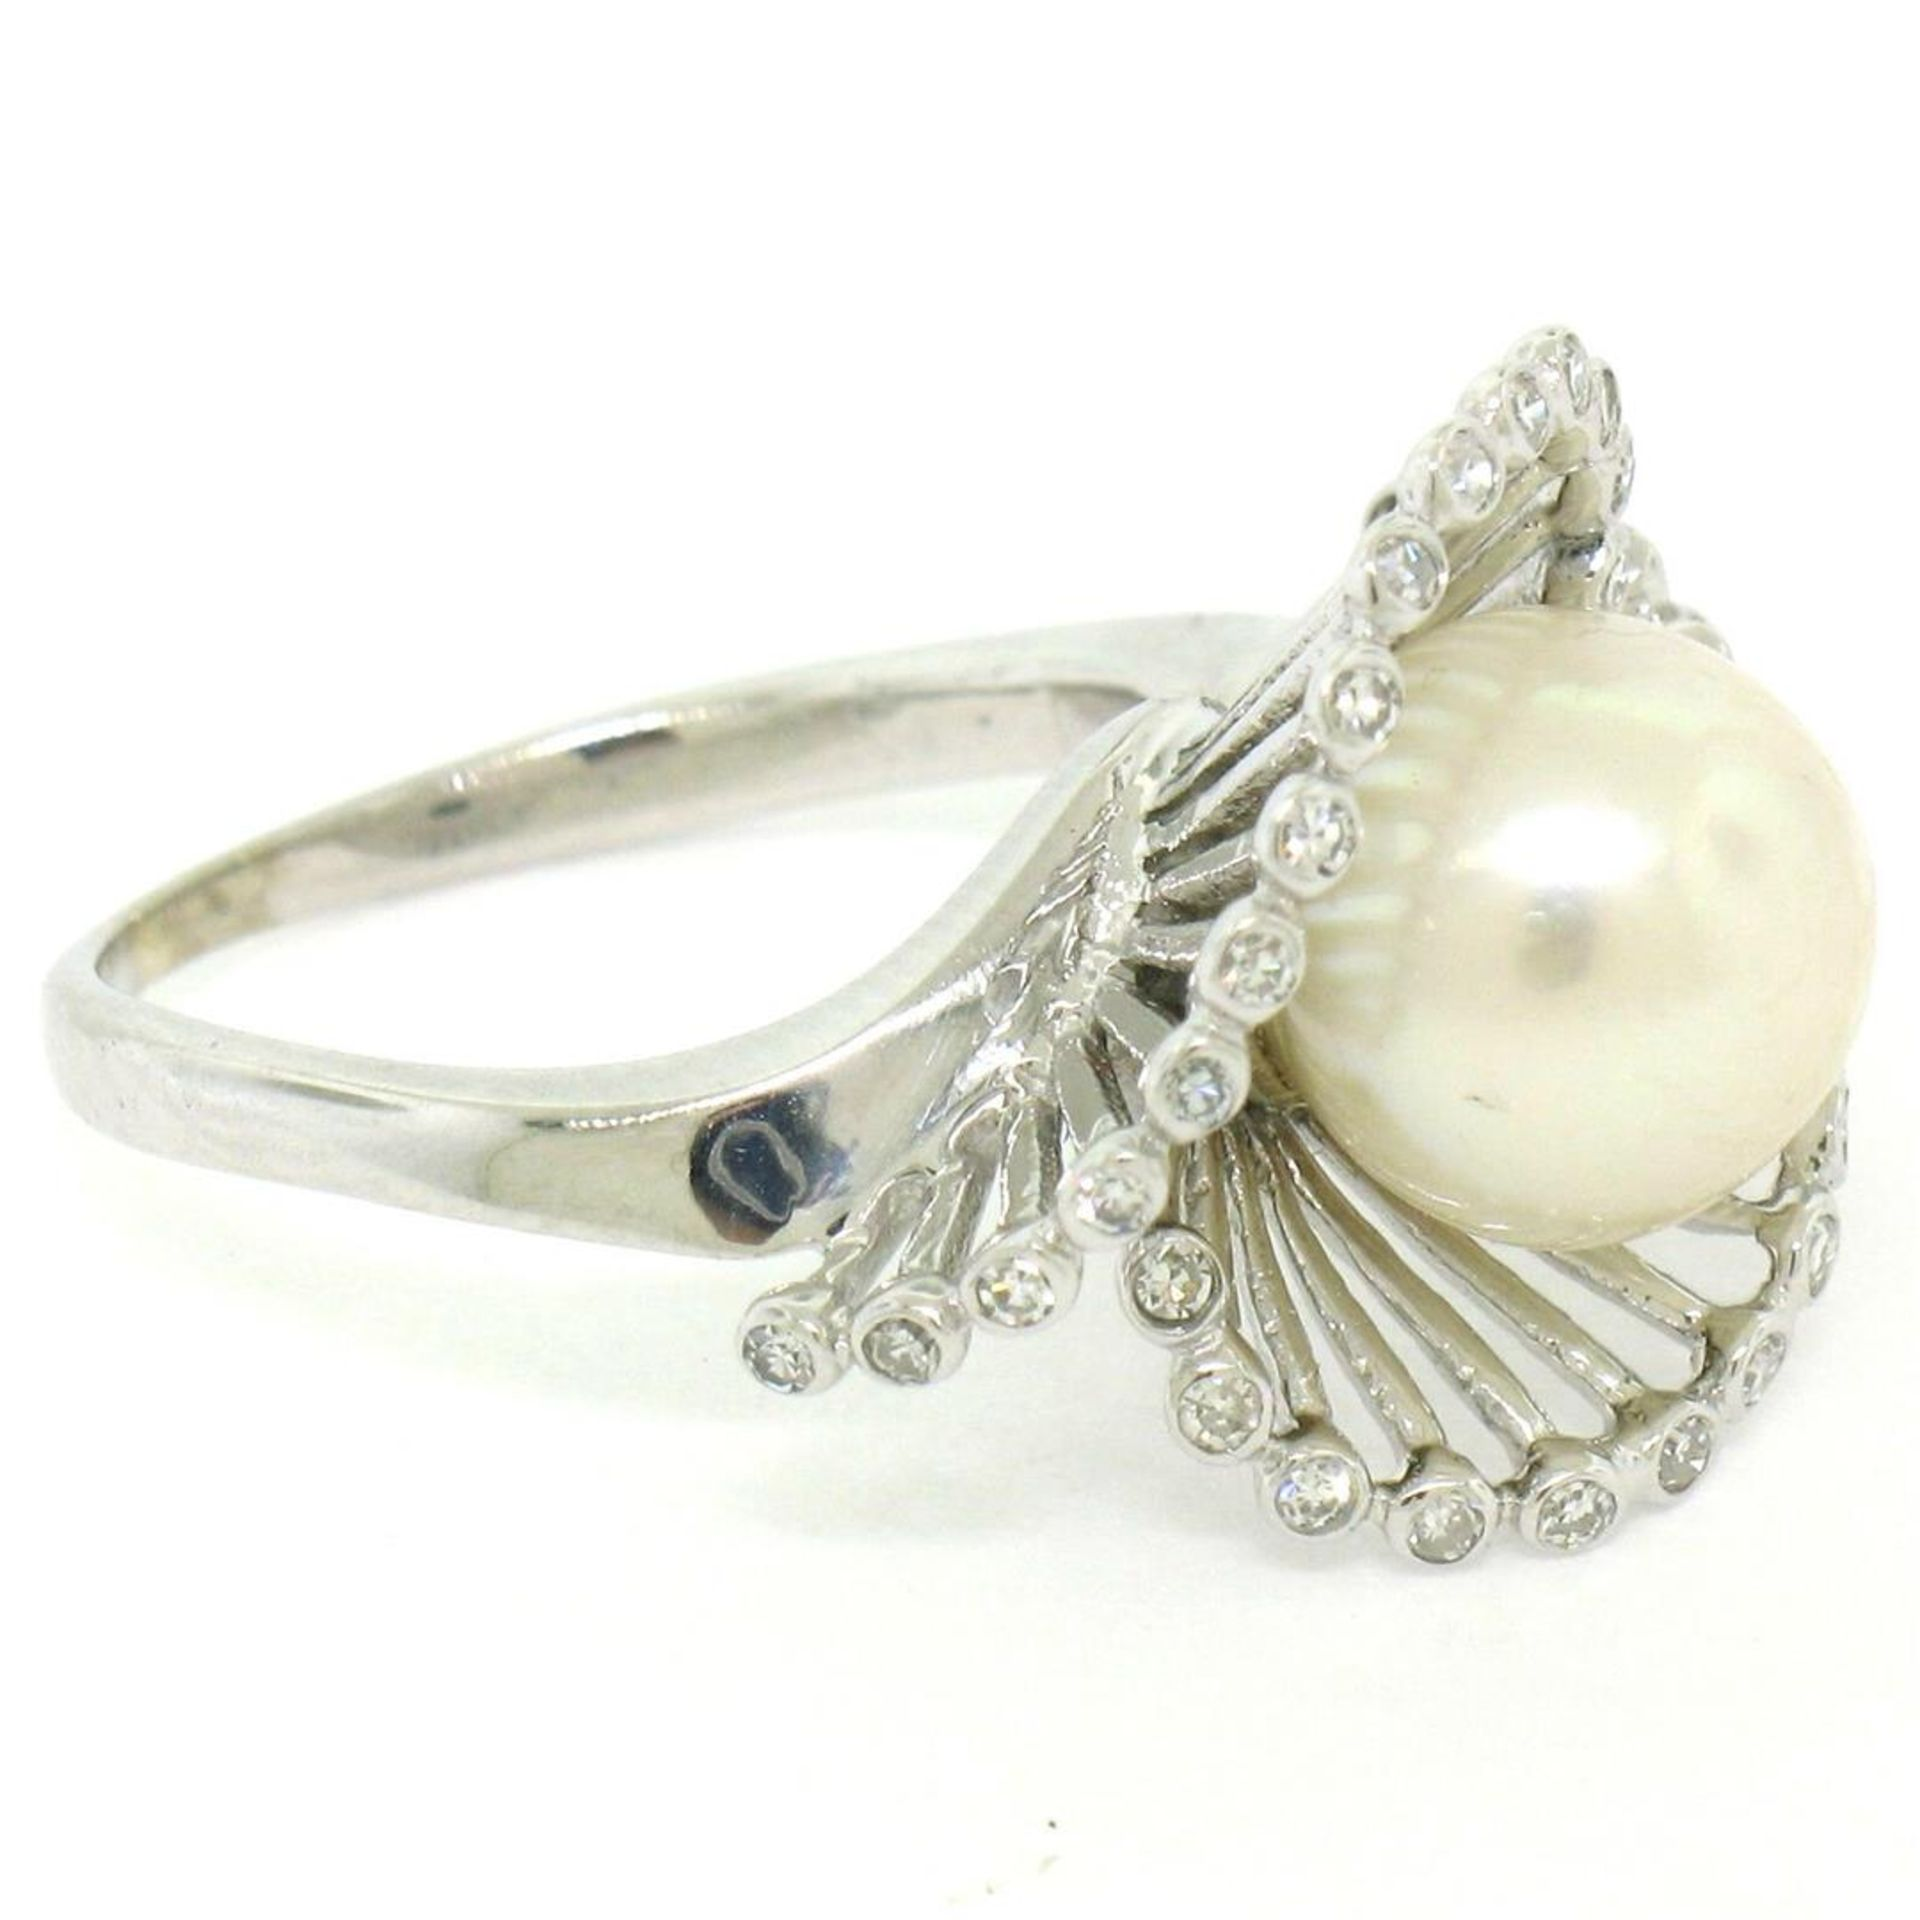 Vintage 14K White Gold 8.5mm Pearl Bezel Diamond 2 Wave Bypass Cocktail Ring - Image 5 of 8